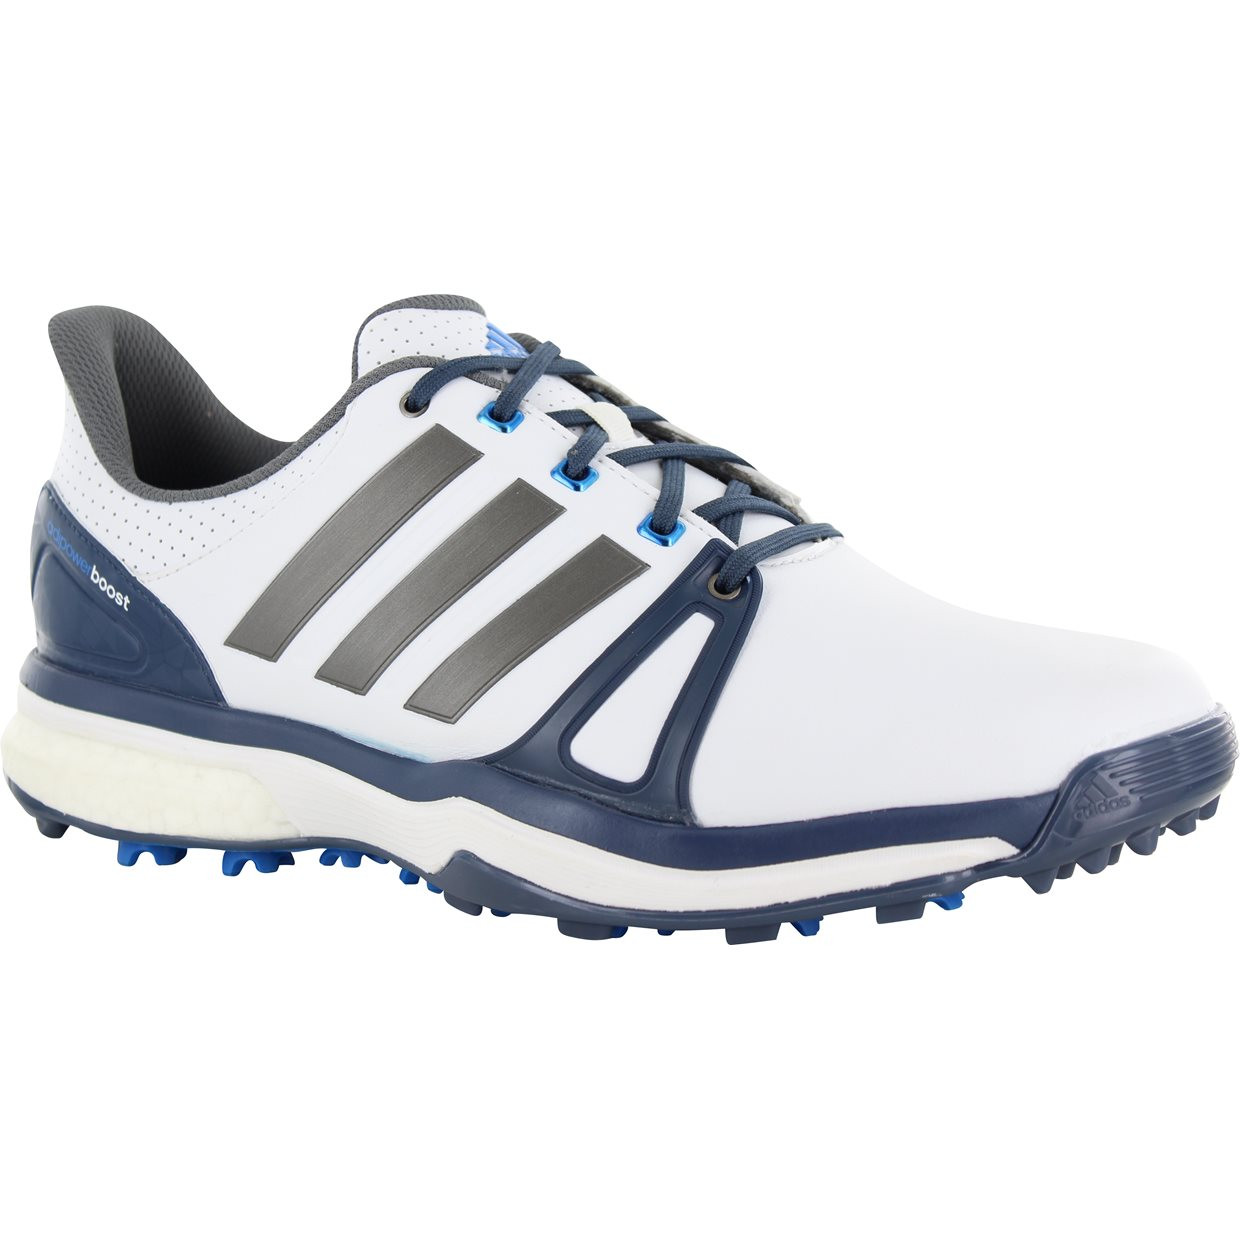 Adidas Golf Shoes  Wide